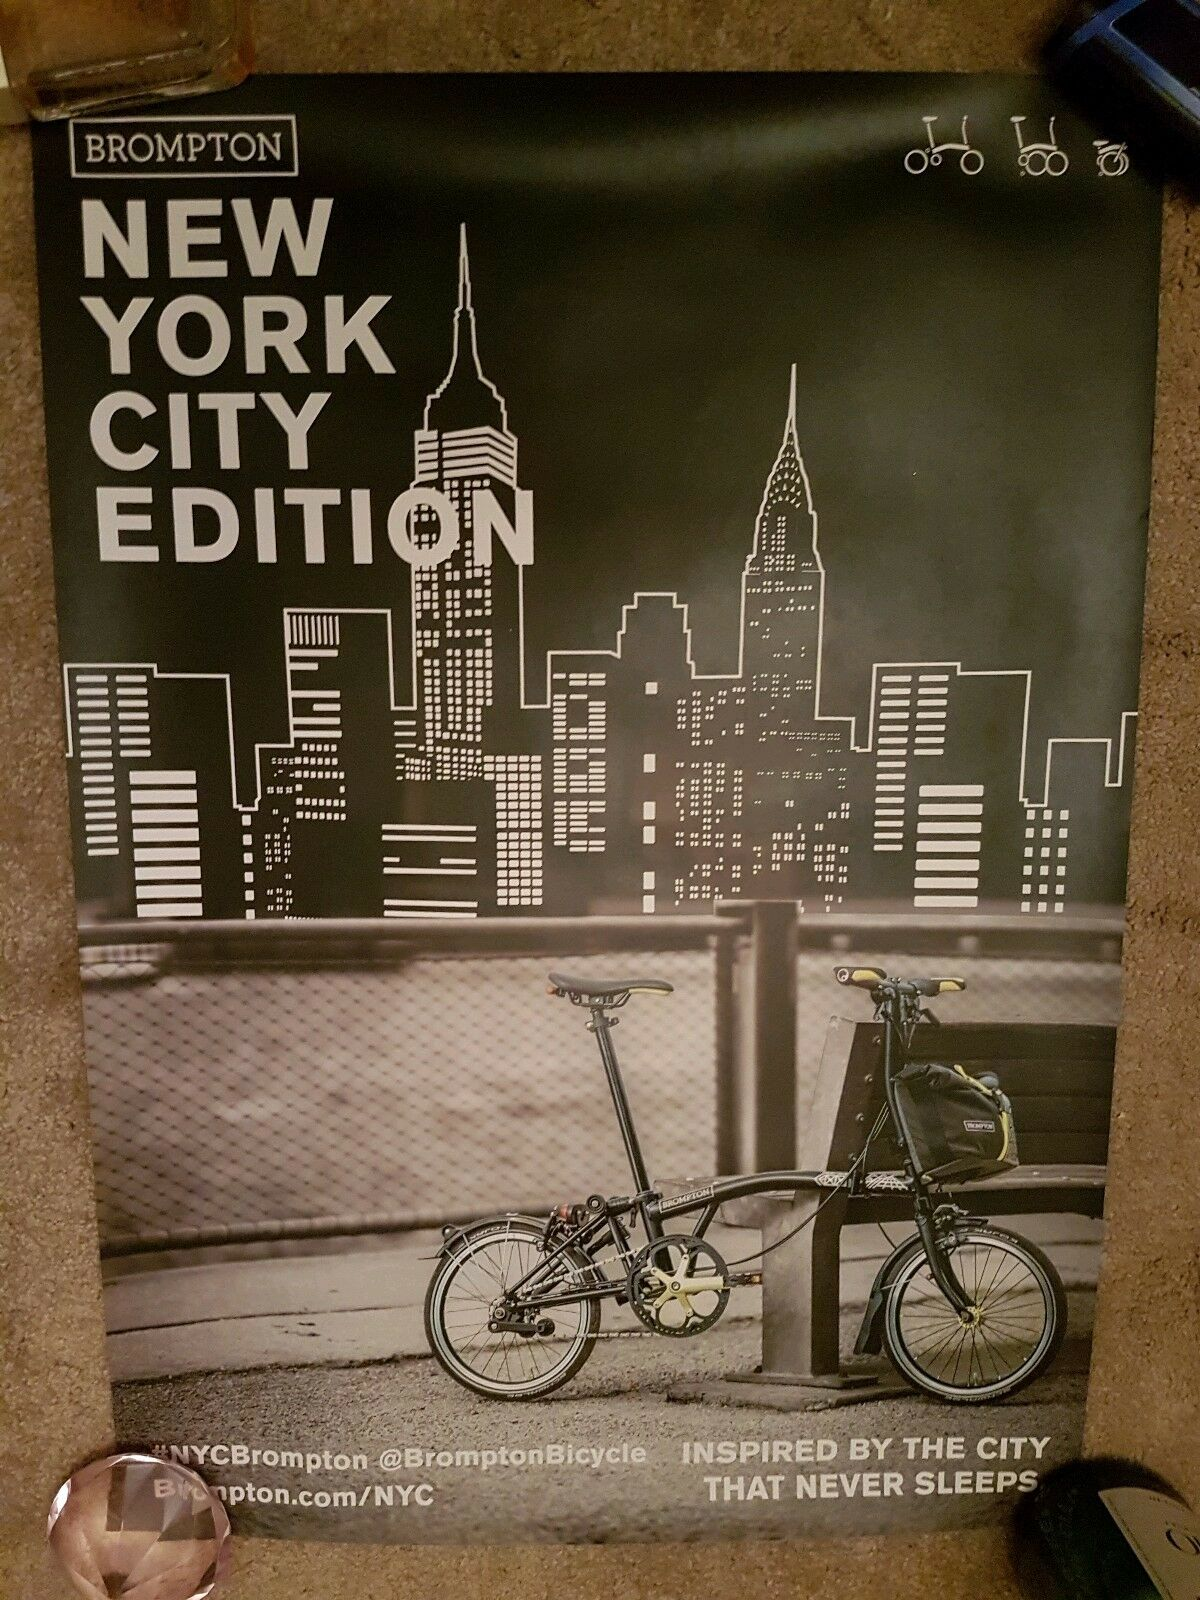 BROMPTON New York City Edition Cycling poster - Excellent Condition